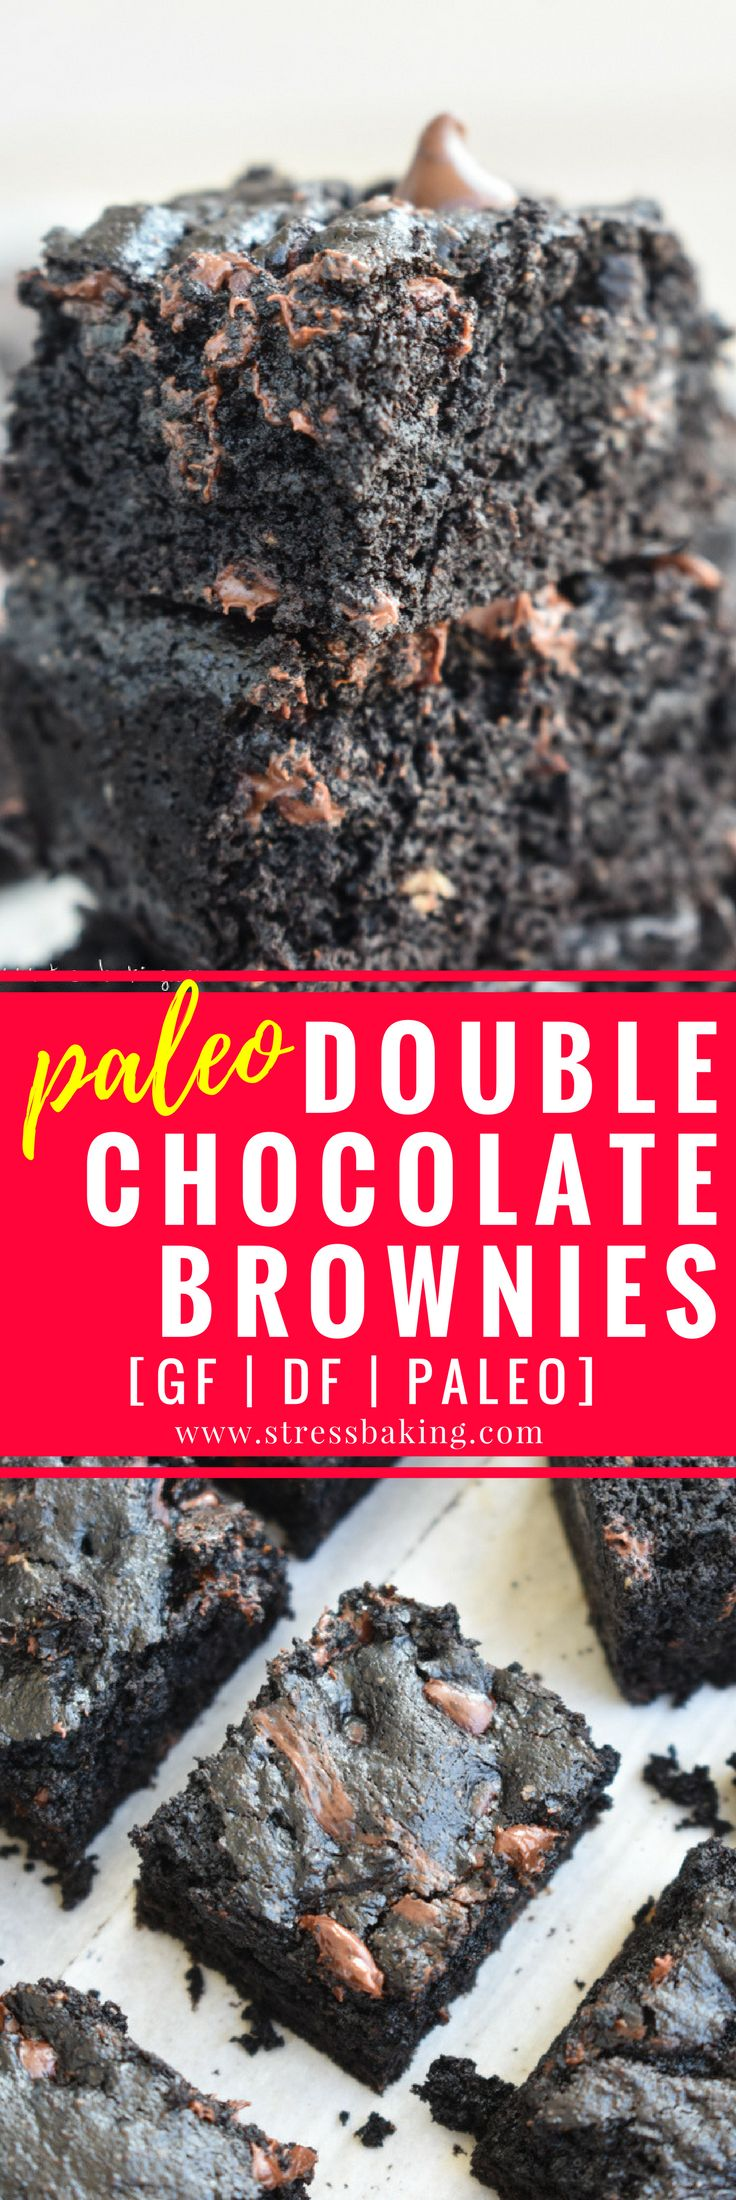 Paleo Double Chocolate Brownies: Chocolate brownies so thick and rich that you would never know they're gluten free, dairy free, and paleo!   stressbaking.com